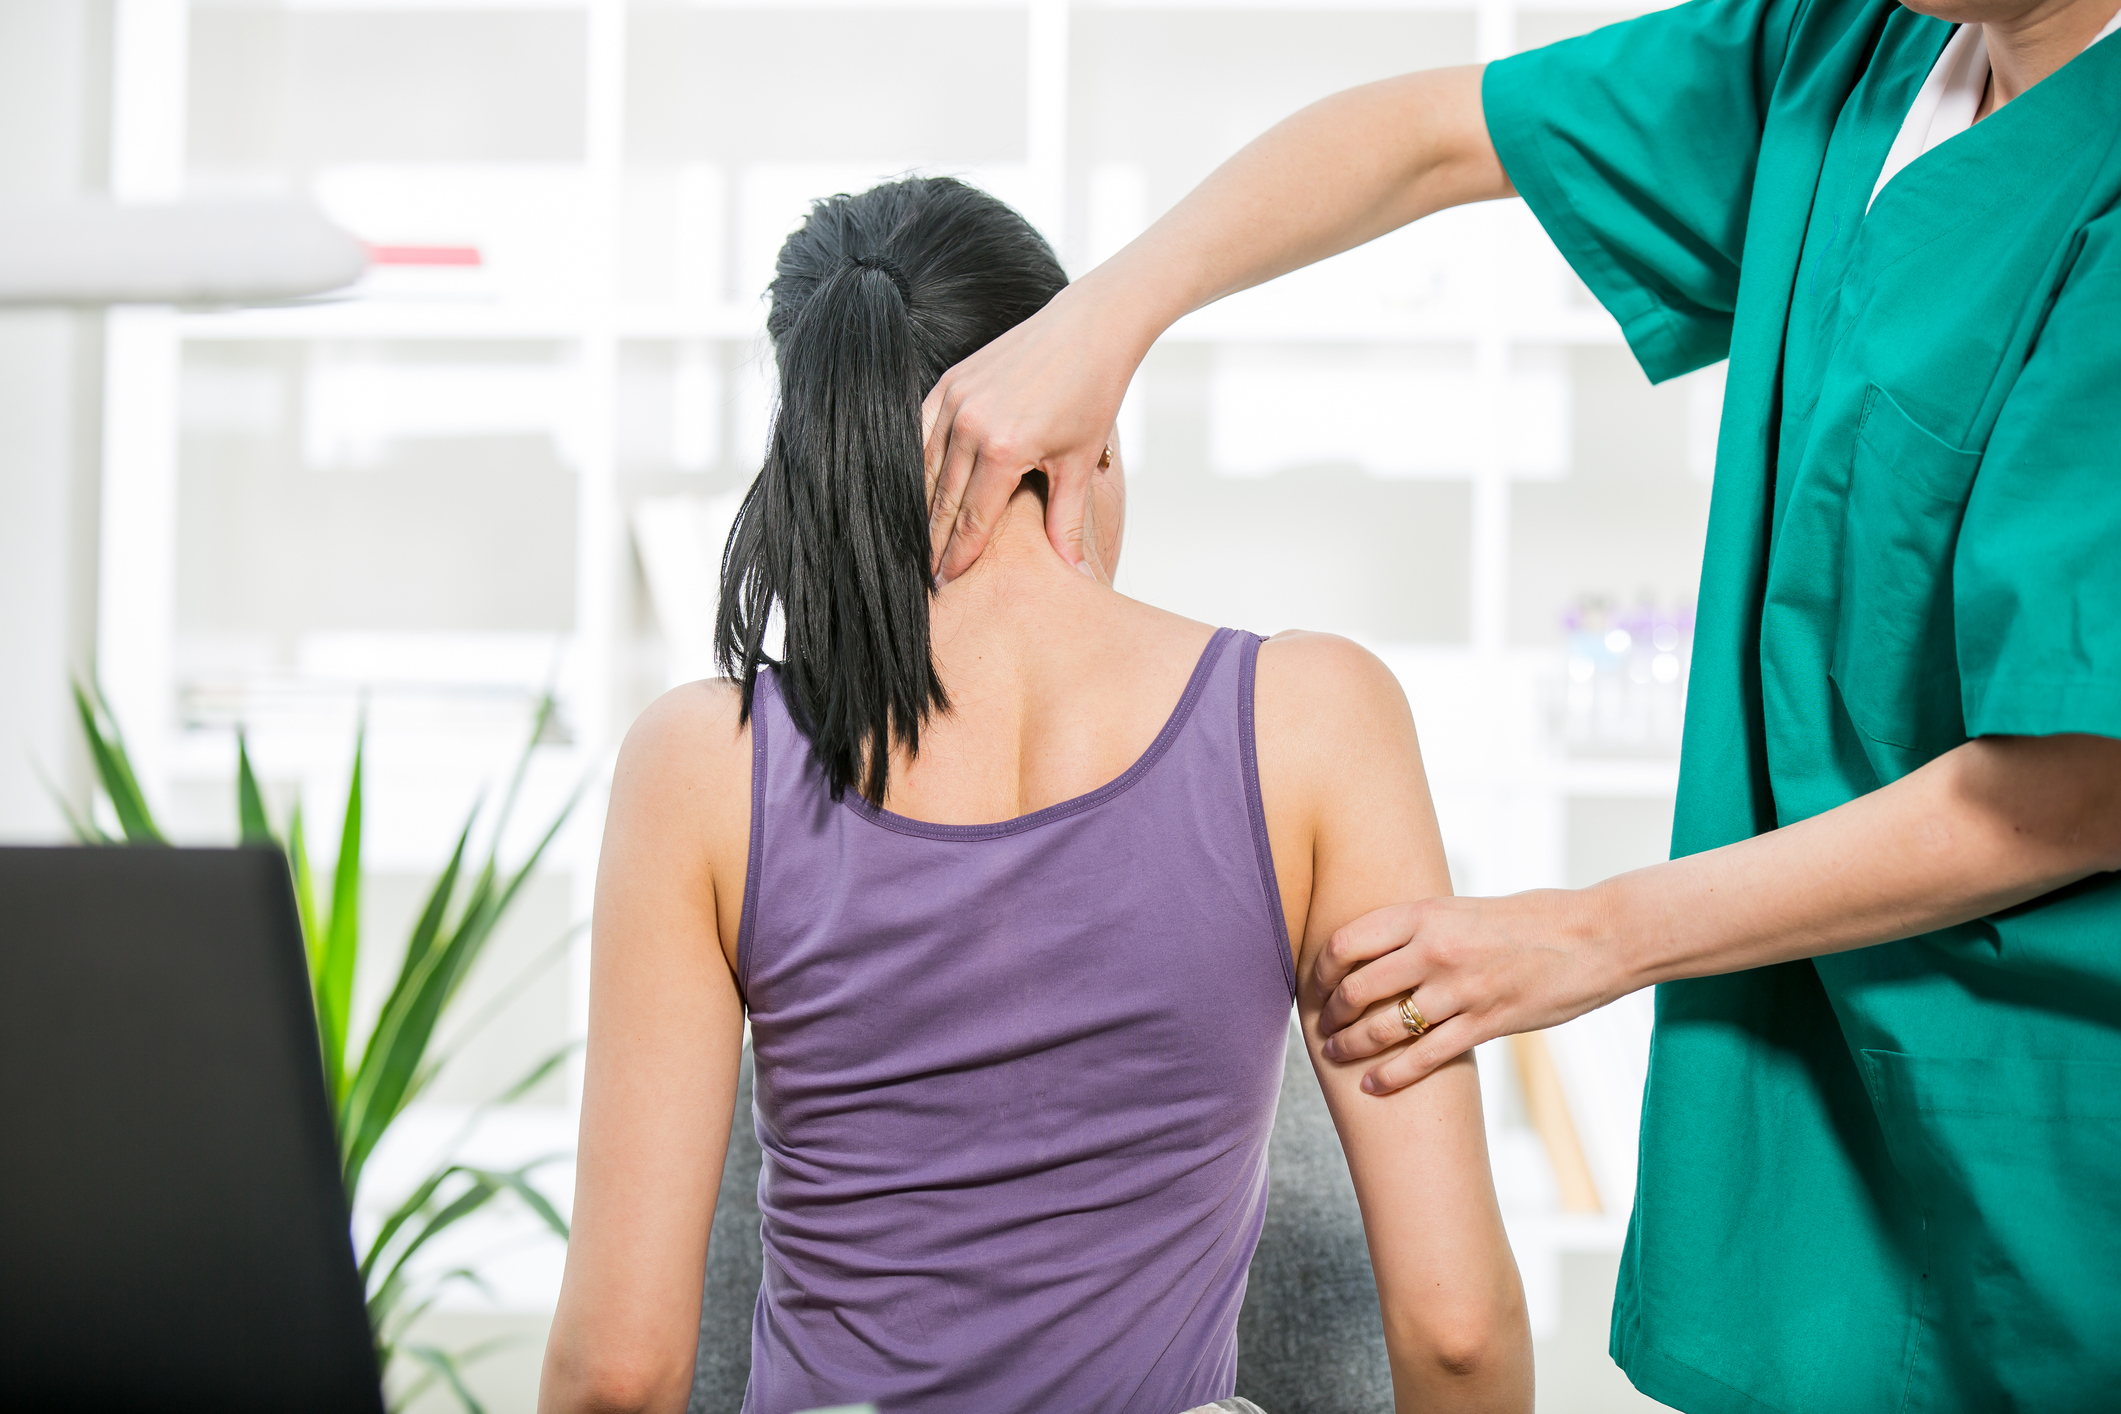 Chiropractor stretches female patient neck muscles